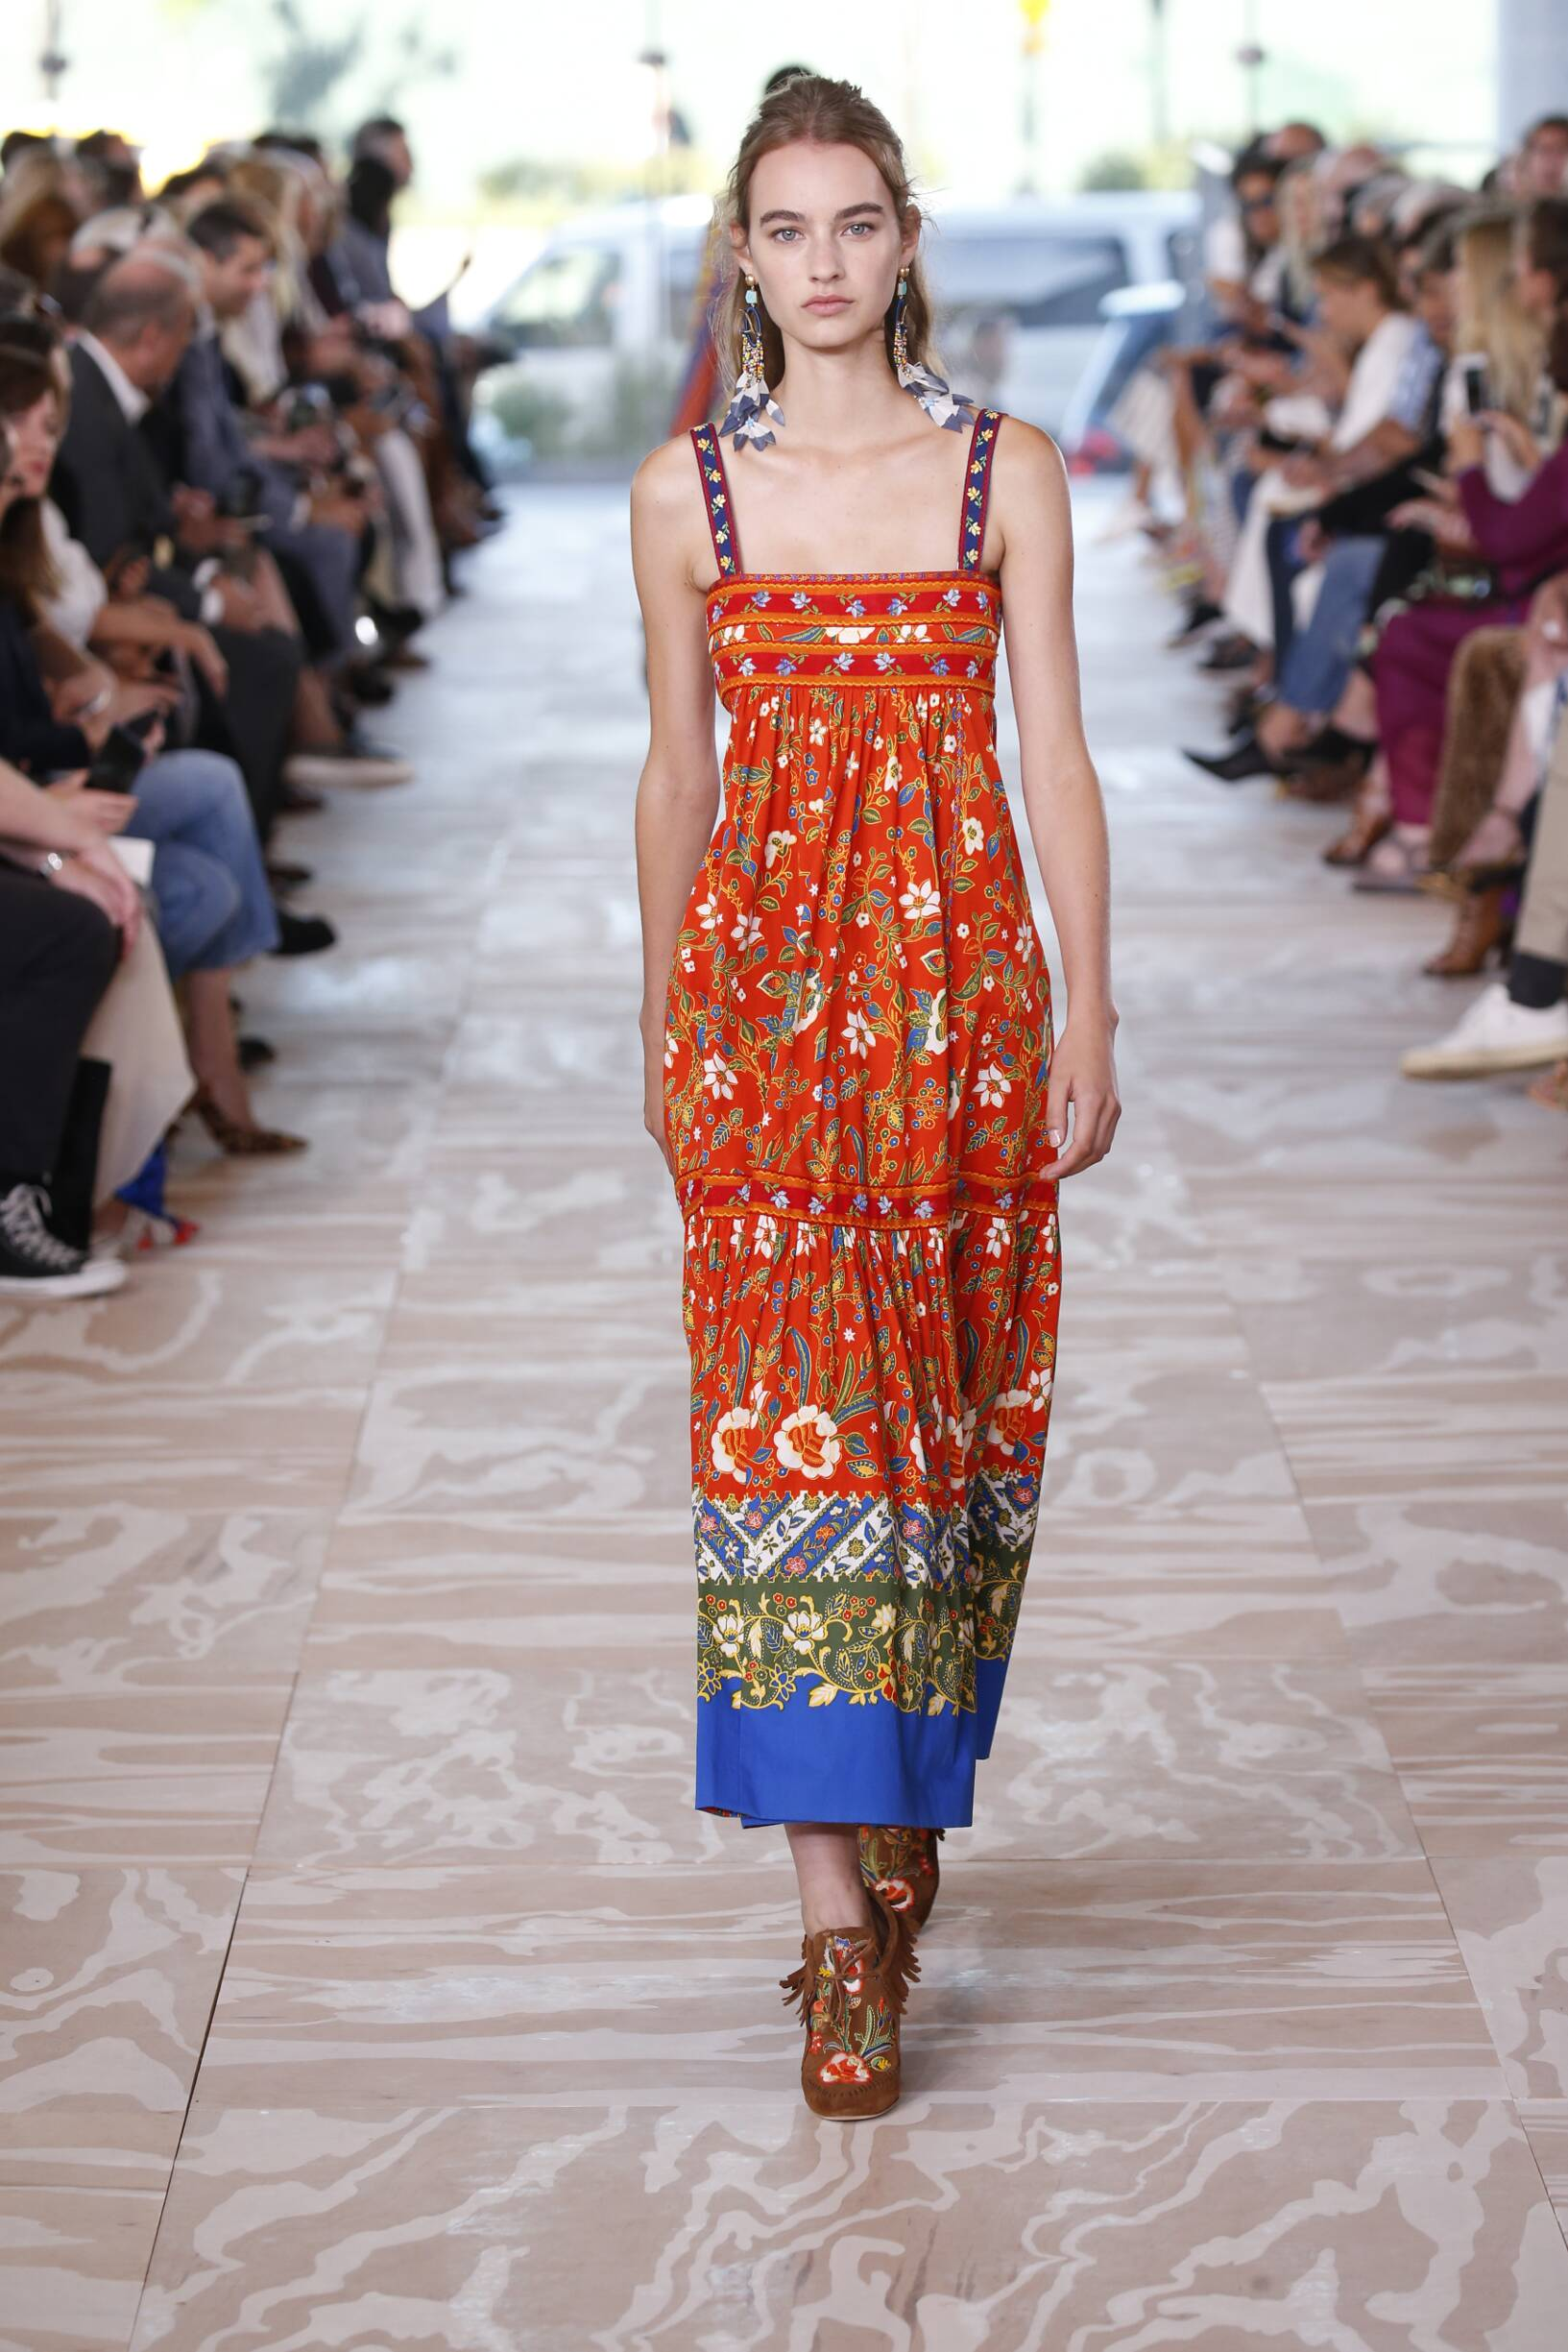 Catwalk Tory Burch Woman Fashion Show Summer 2017